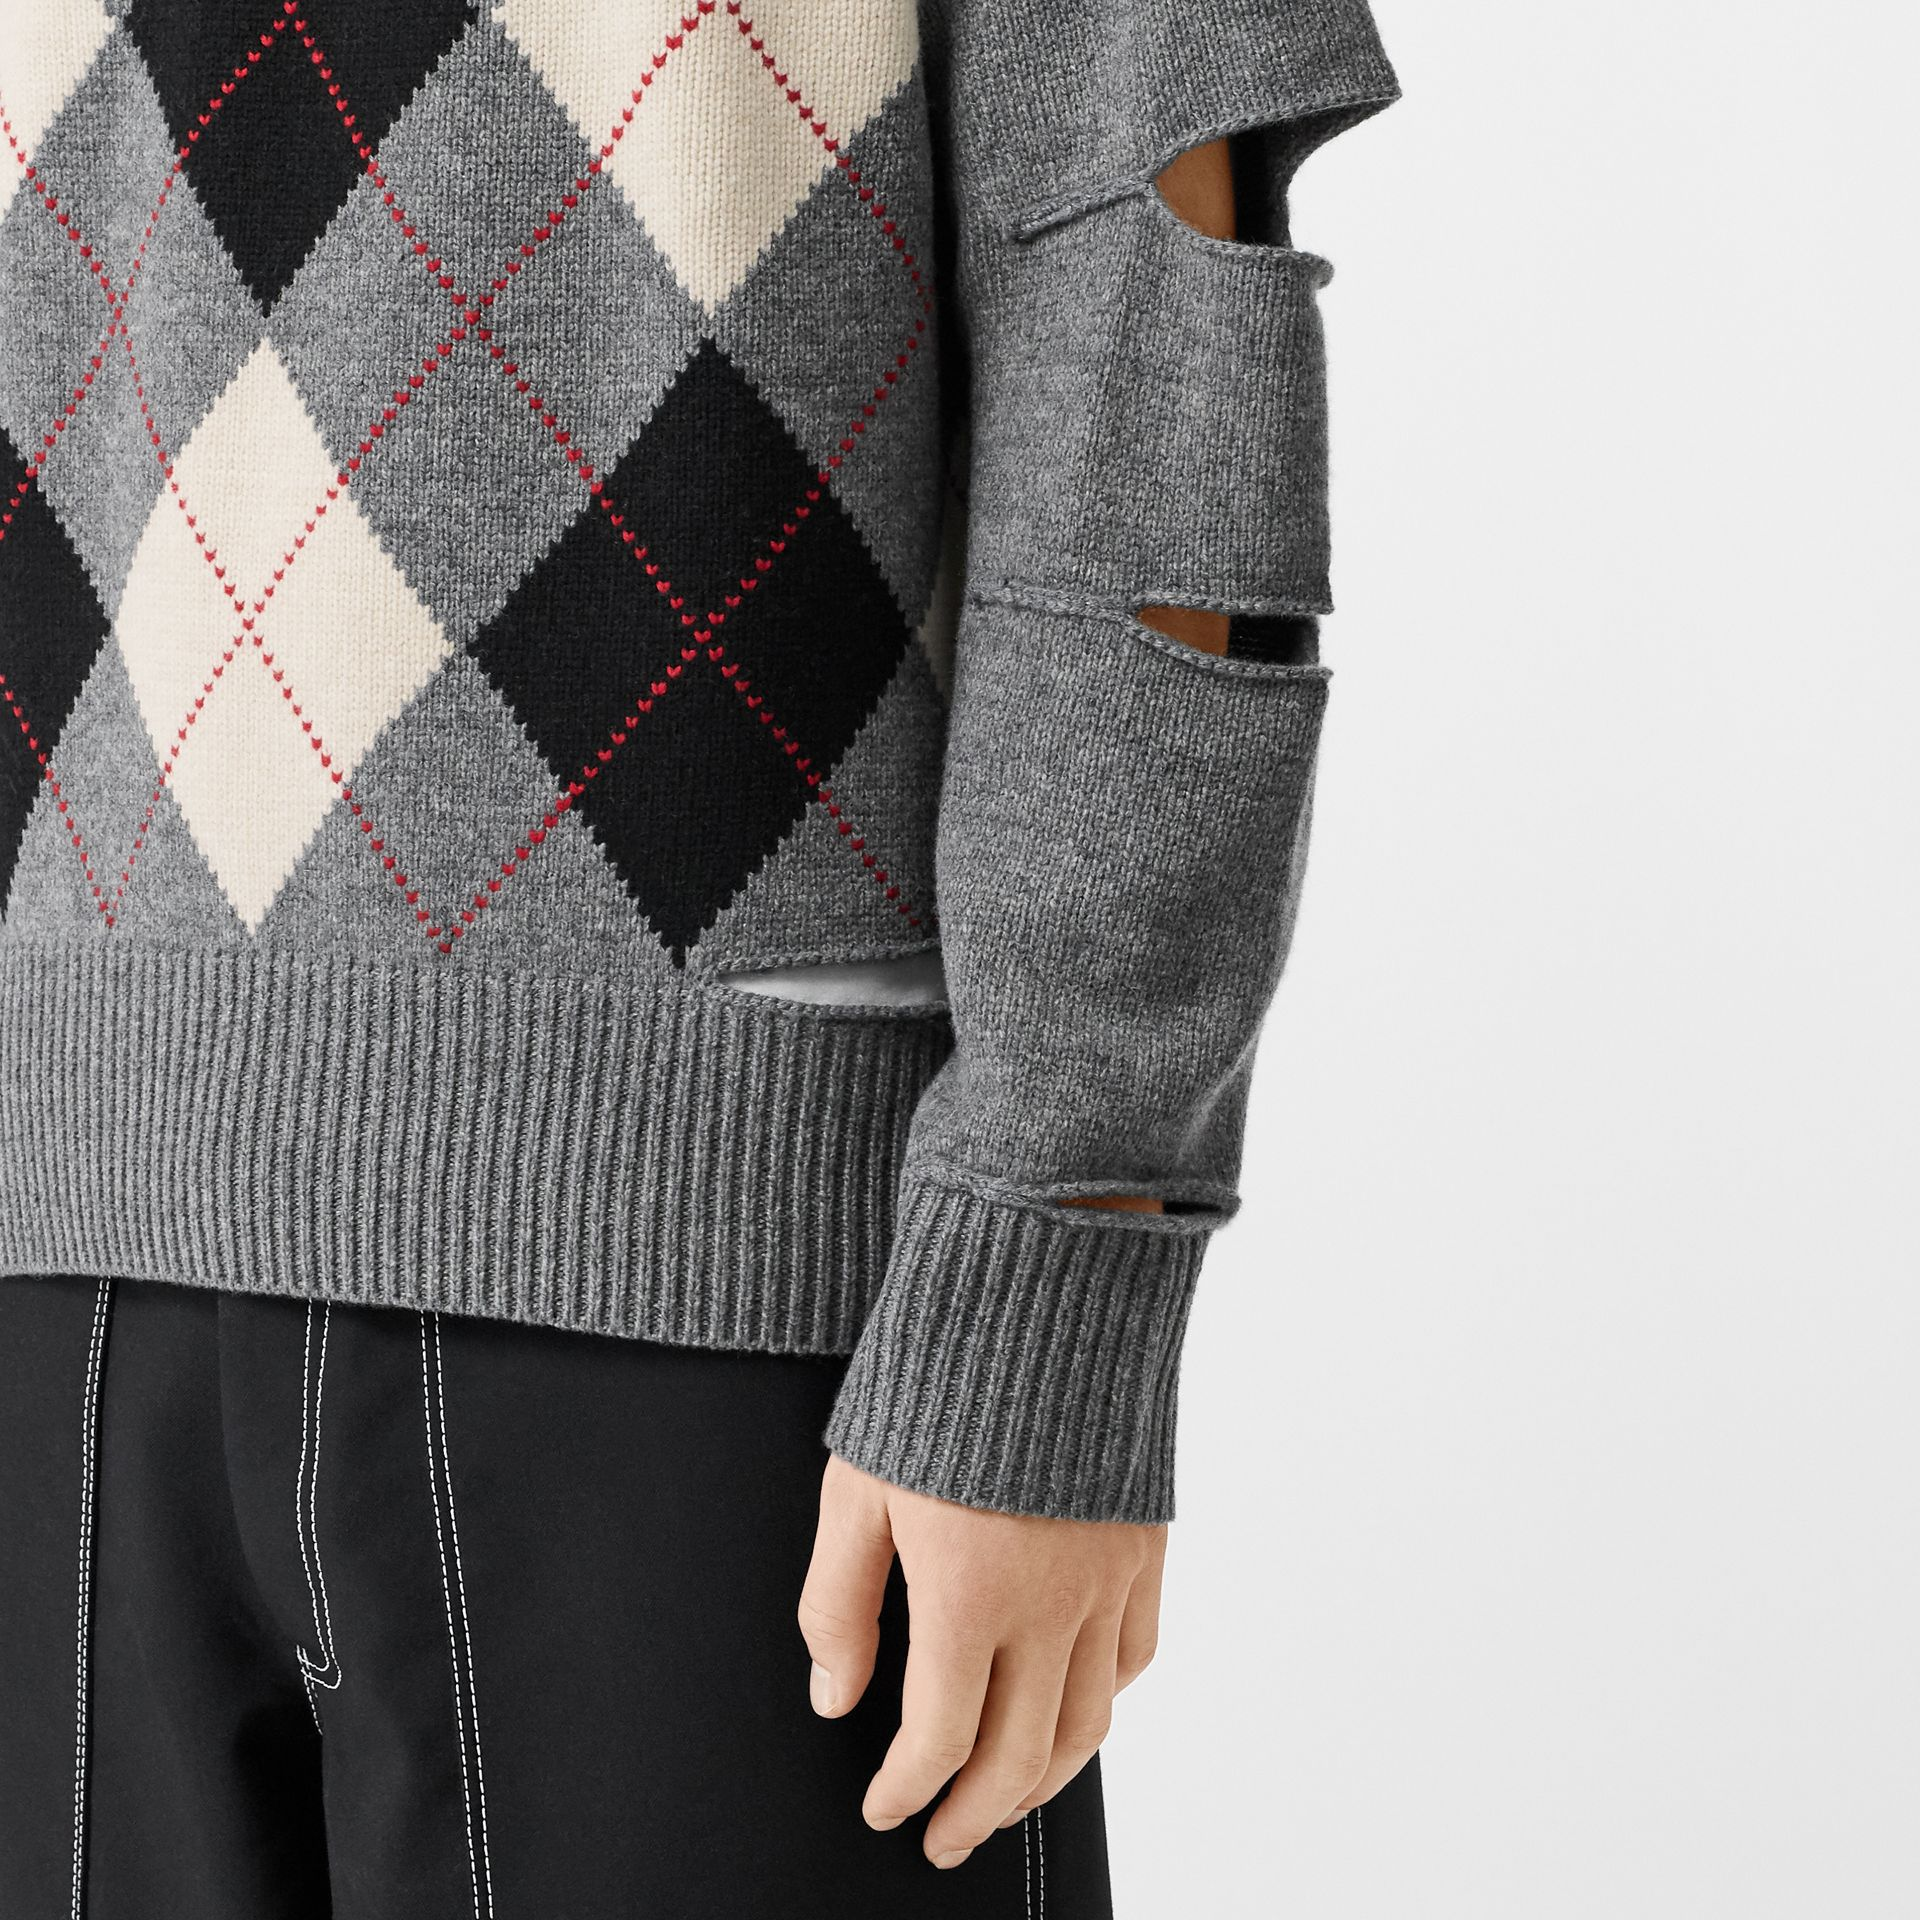 Cut-out Detail Merino Wool Cashmere Sweater in Mid Greymelange - Men | Burberry Australia - gallery image 1